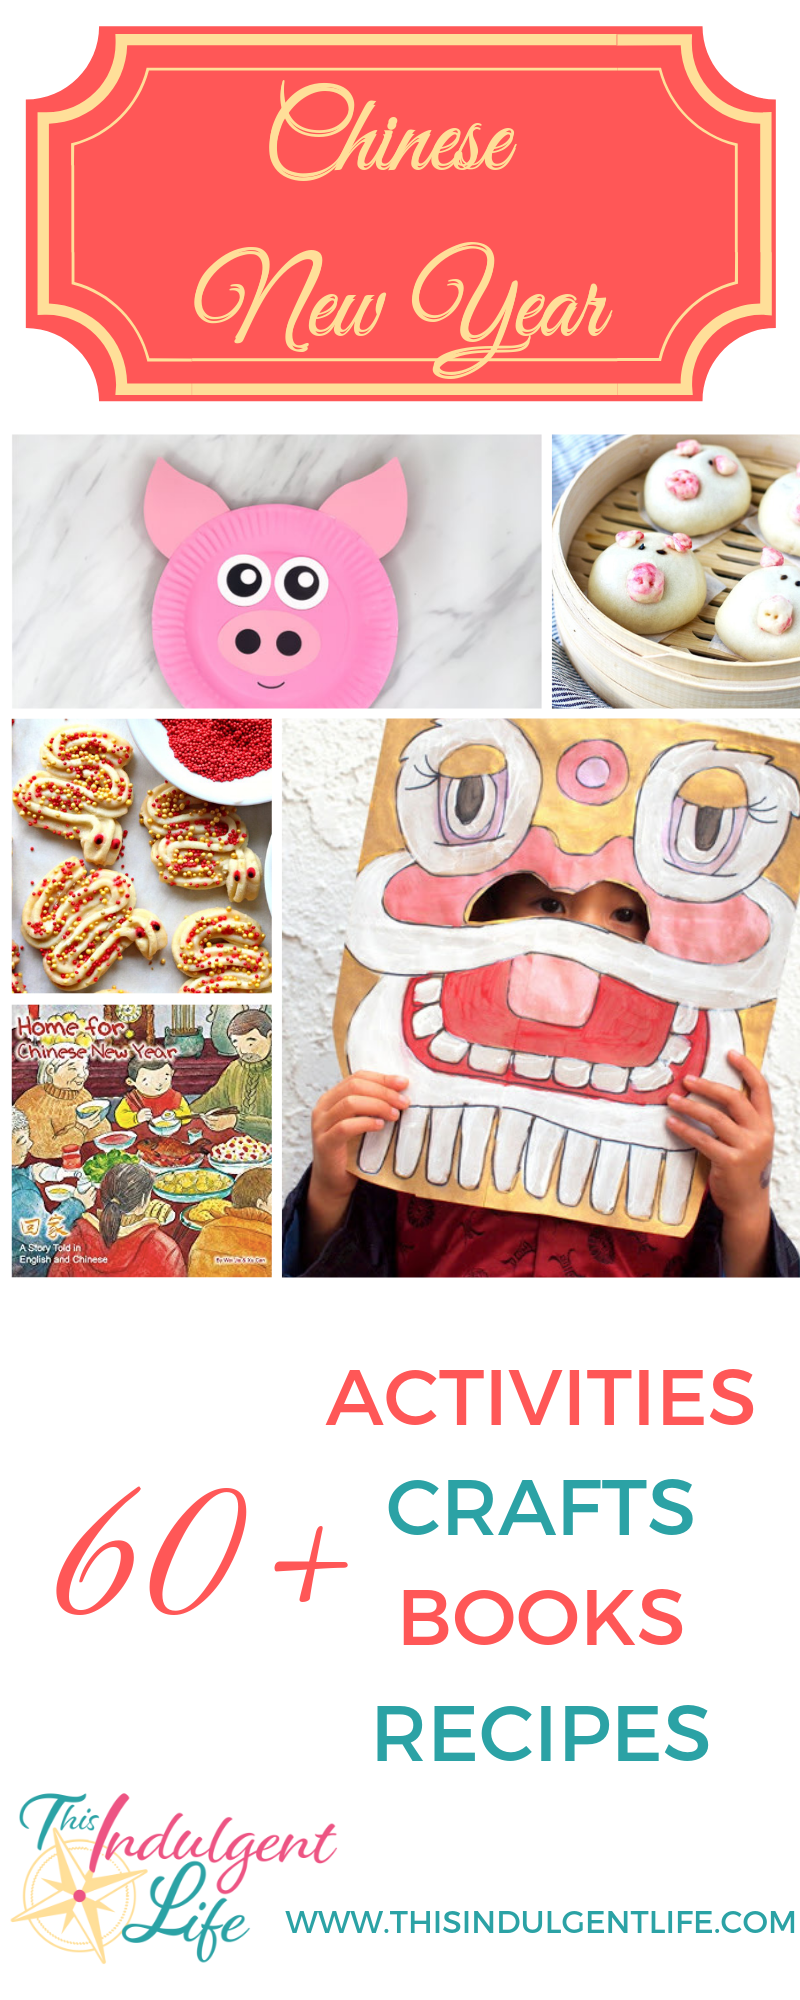 Chinese New Year-60 activities crafts books and recipes | This Indulgent Life | Celebrate Chinese New Year with these fun and educational books, crafts, and food! | #chinesenewyearscrafts #cnycrafts #redenvelopecrafts #dragoncrafts #pigcrafts #chineserecipes #yearofthepig #lionmask #liondance #springfestival #craftsforkids #preschoolcrafts #lessonsonchina #chineseculture #ChineseNewYear